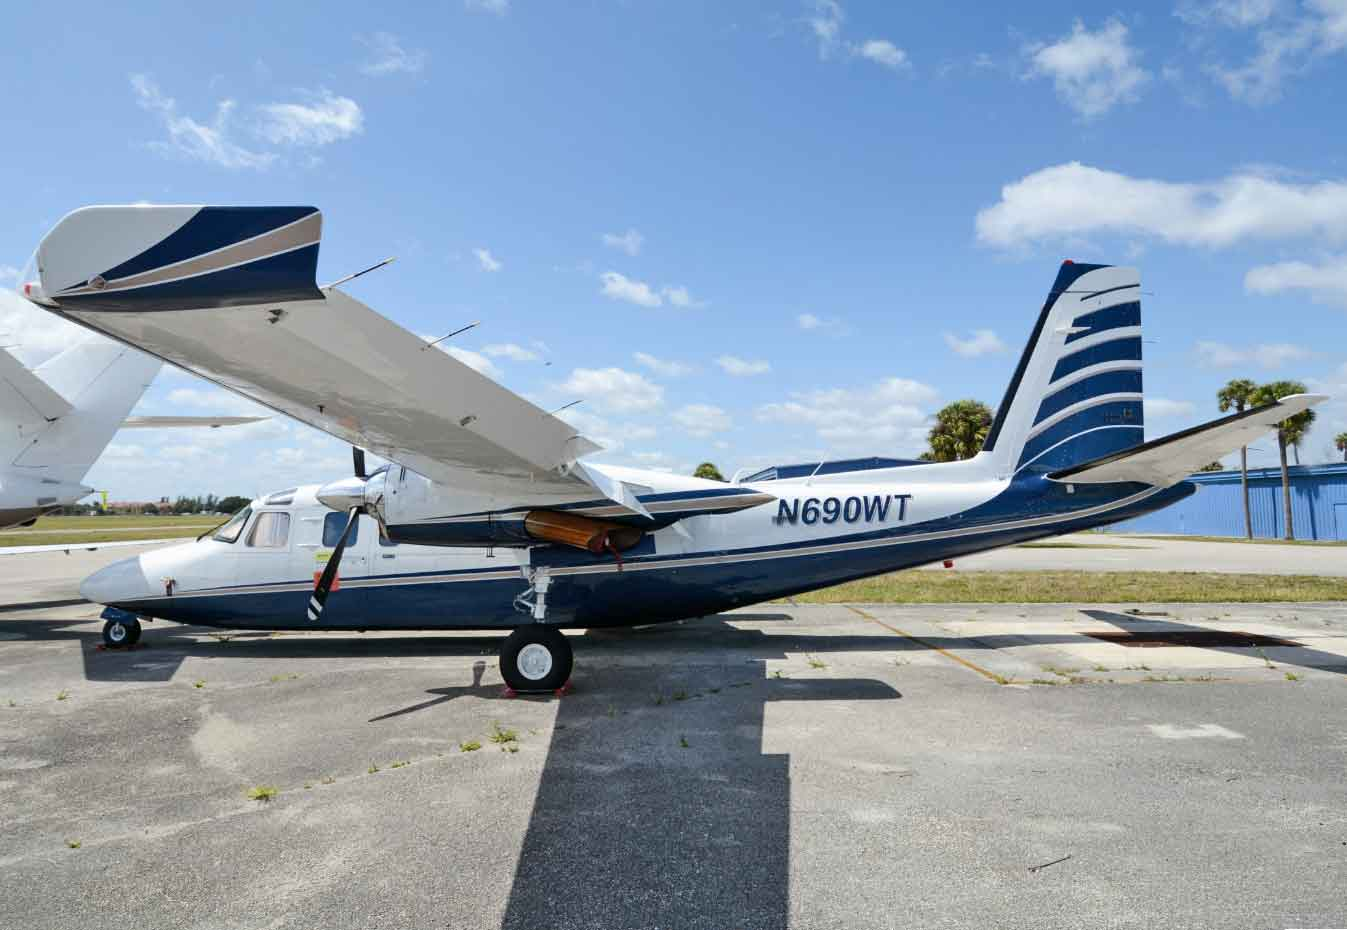 U.S. Treasury Live Aircraft Auction (March 21, Pompano Beach, FL)